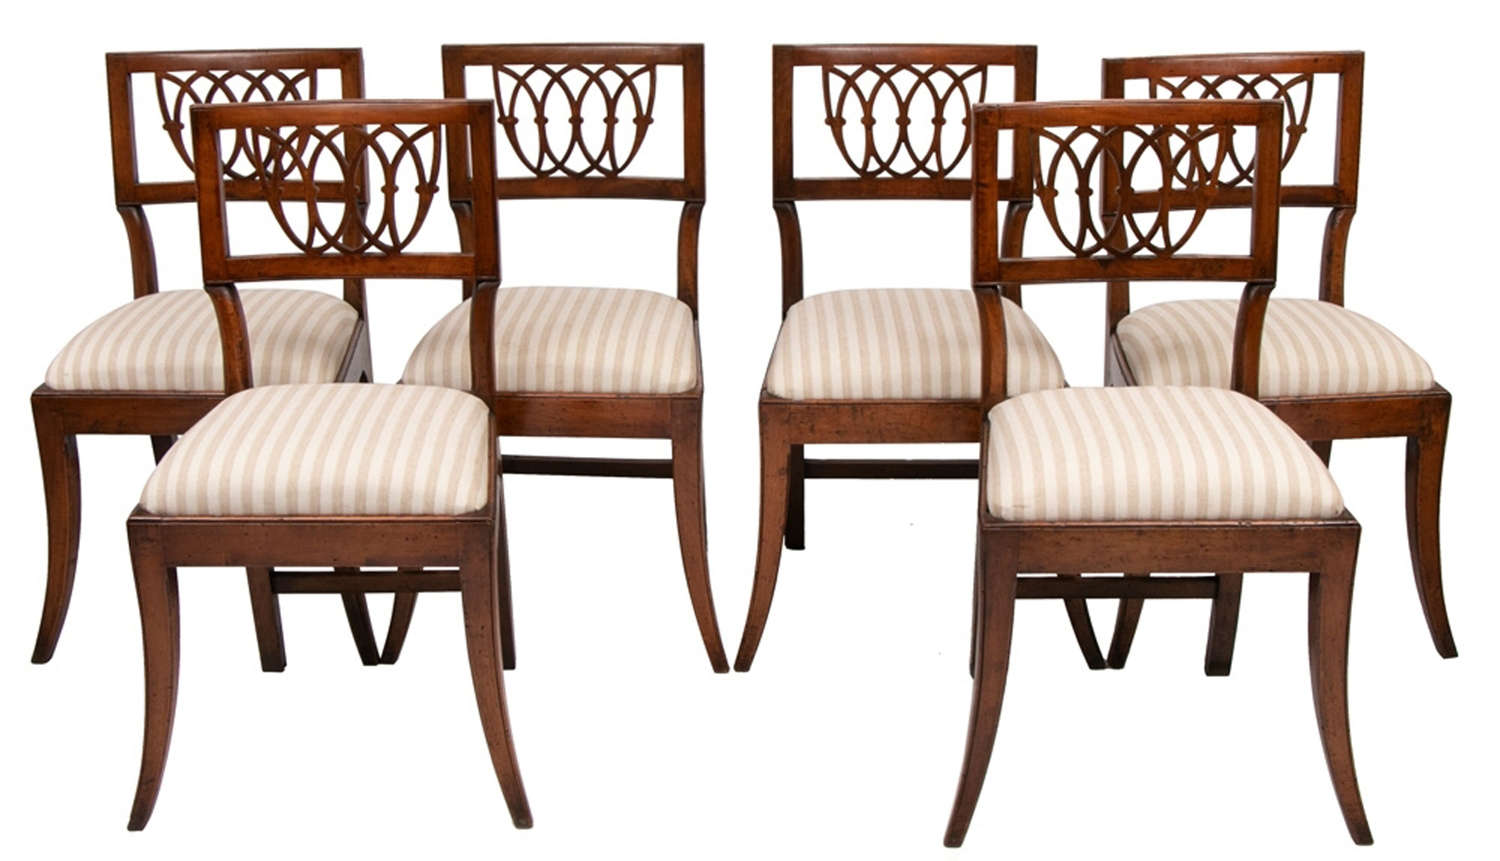 Set of 6 Antique French Cherrywood Dining Chairs c.1800